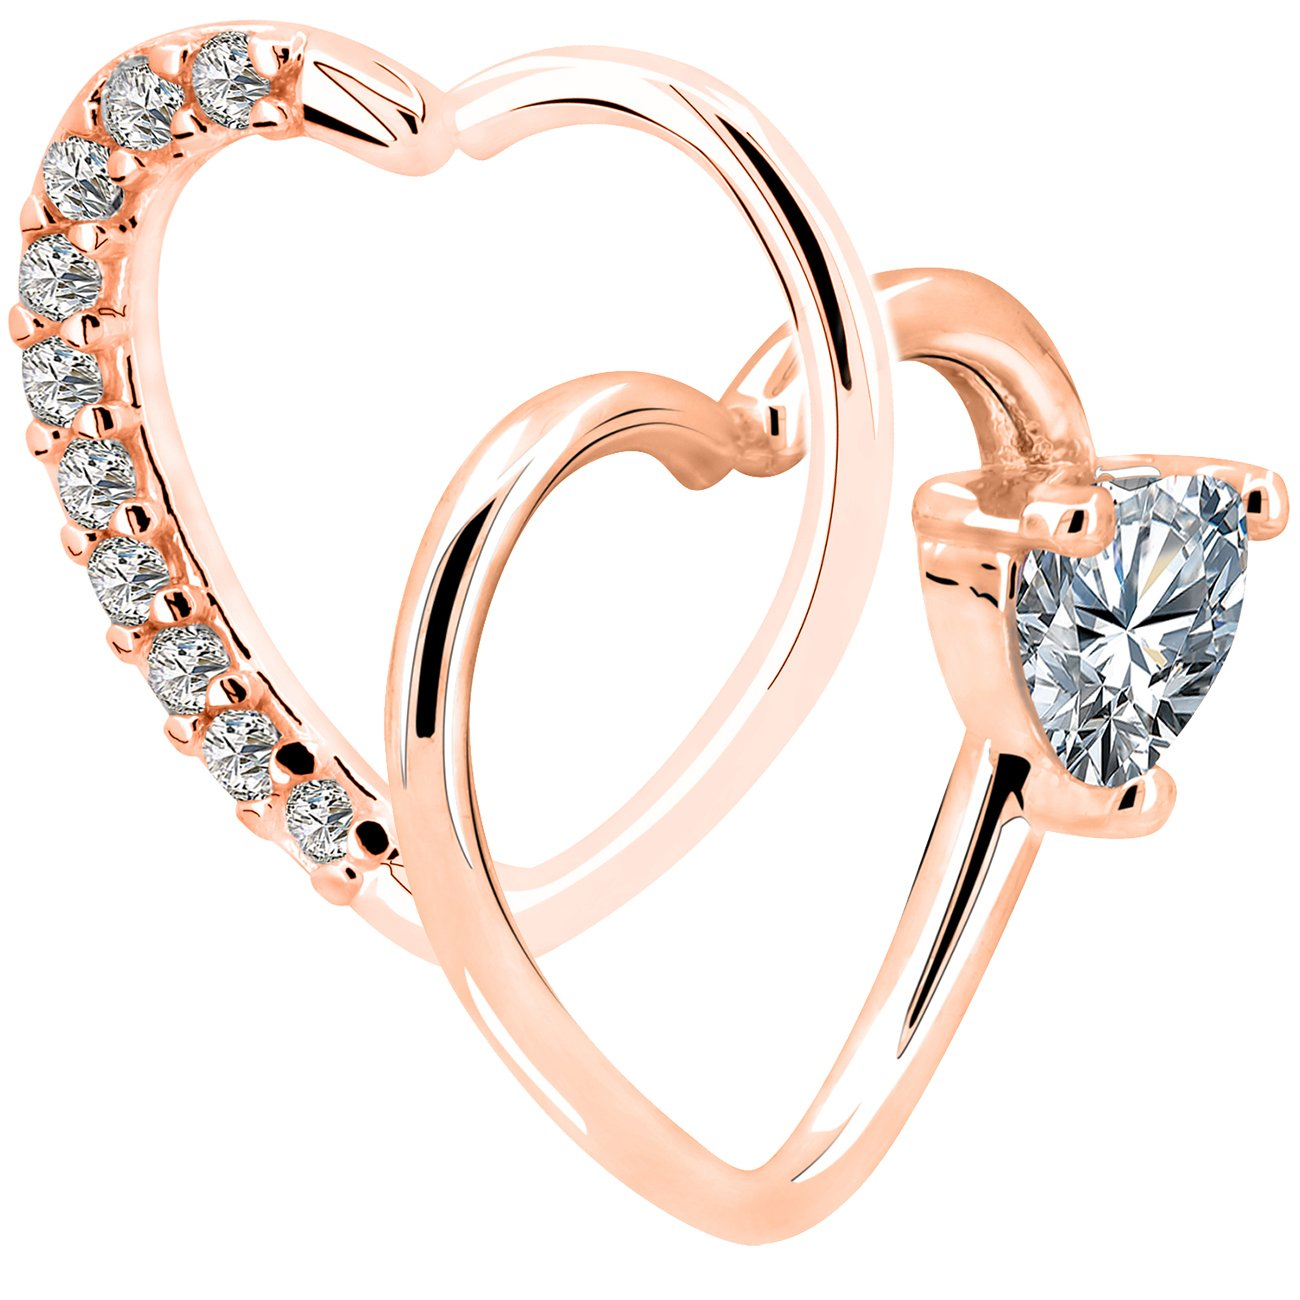 OUFER 2Pieces 18KT Rose Gold Clear Heart Daith Earrings Cartilage Earring Hoop 16Gauge (1.2mm) (Style 2)